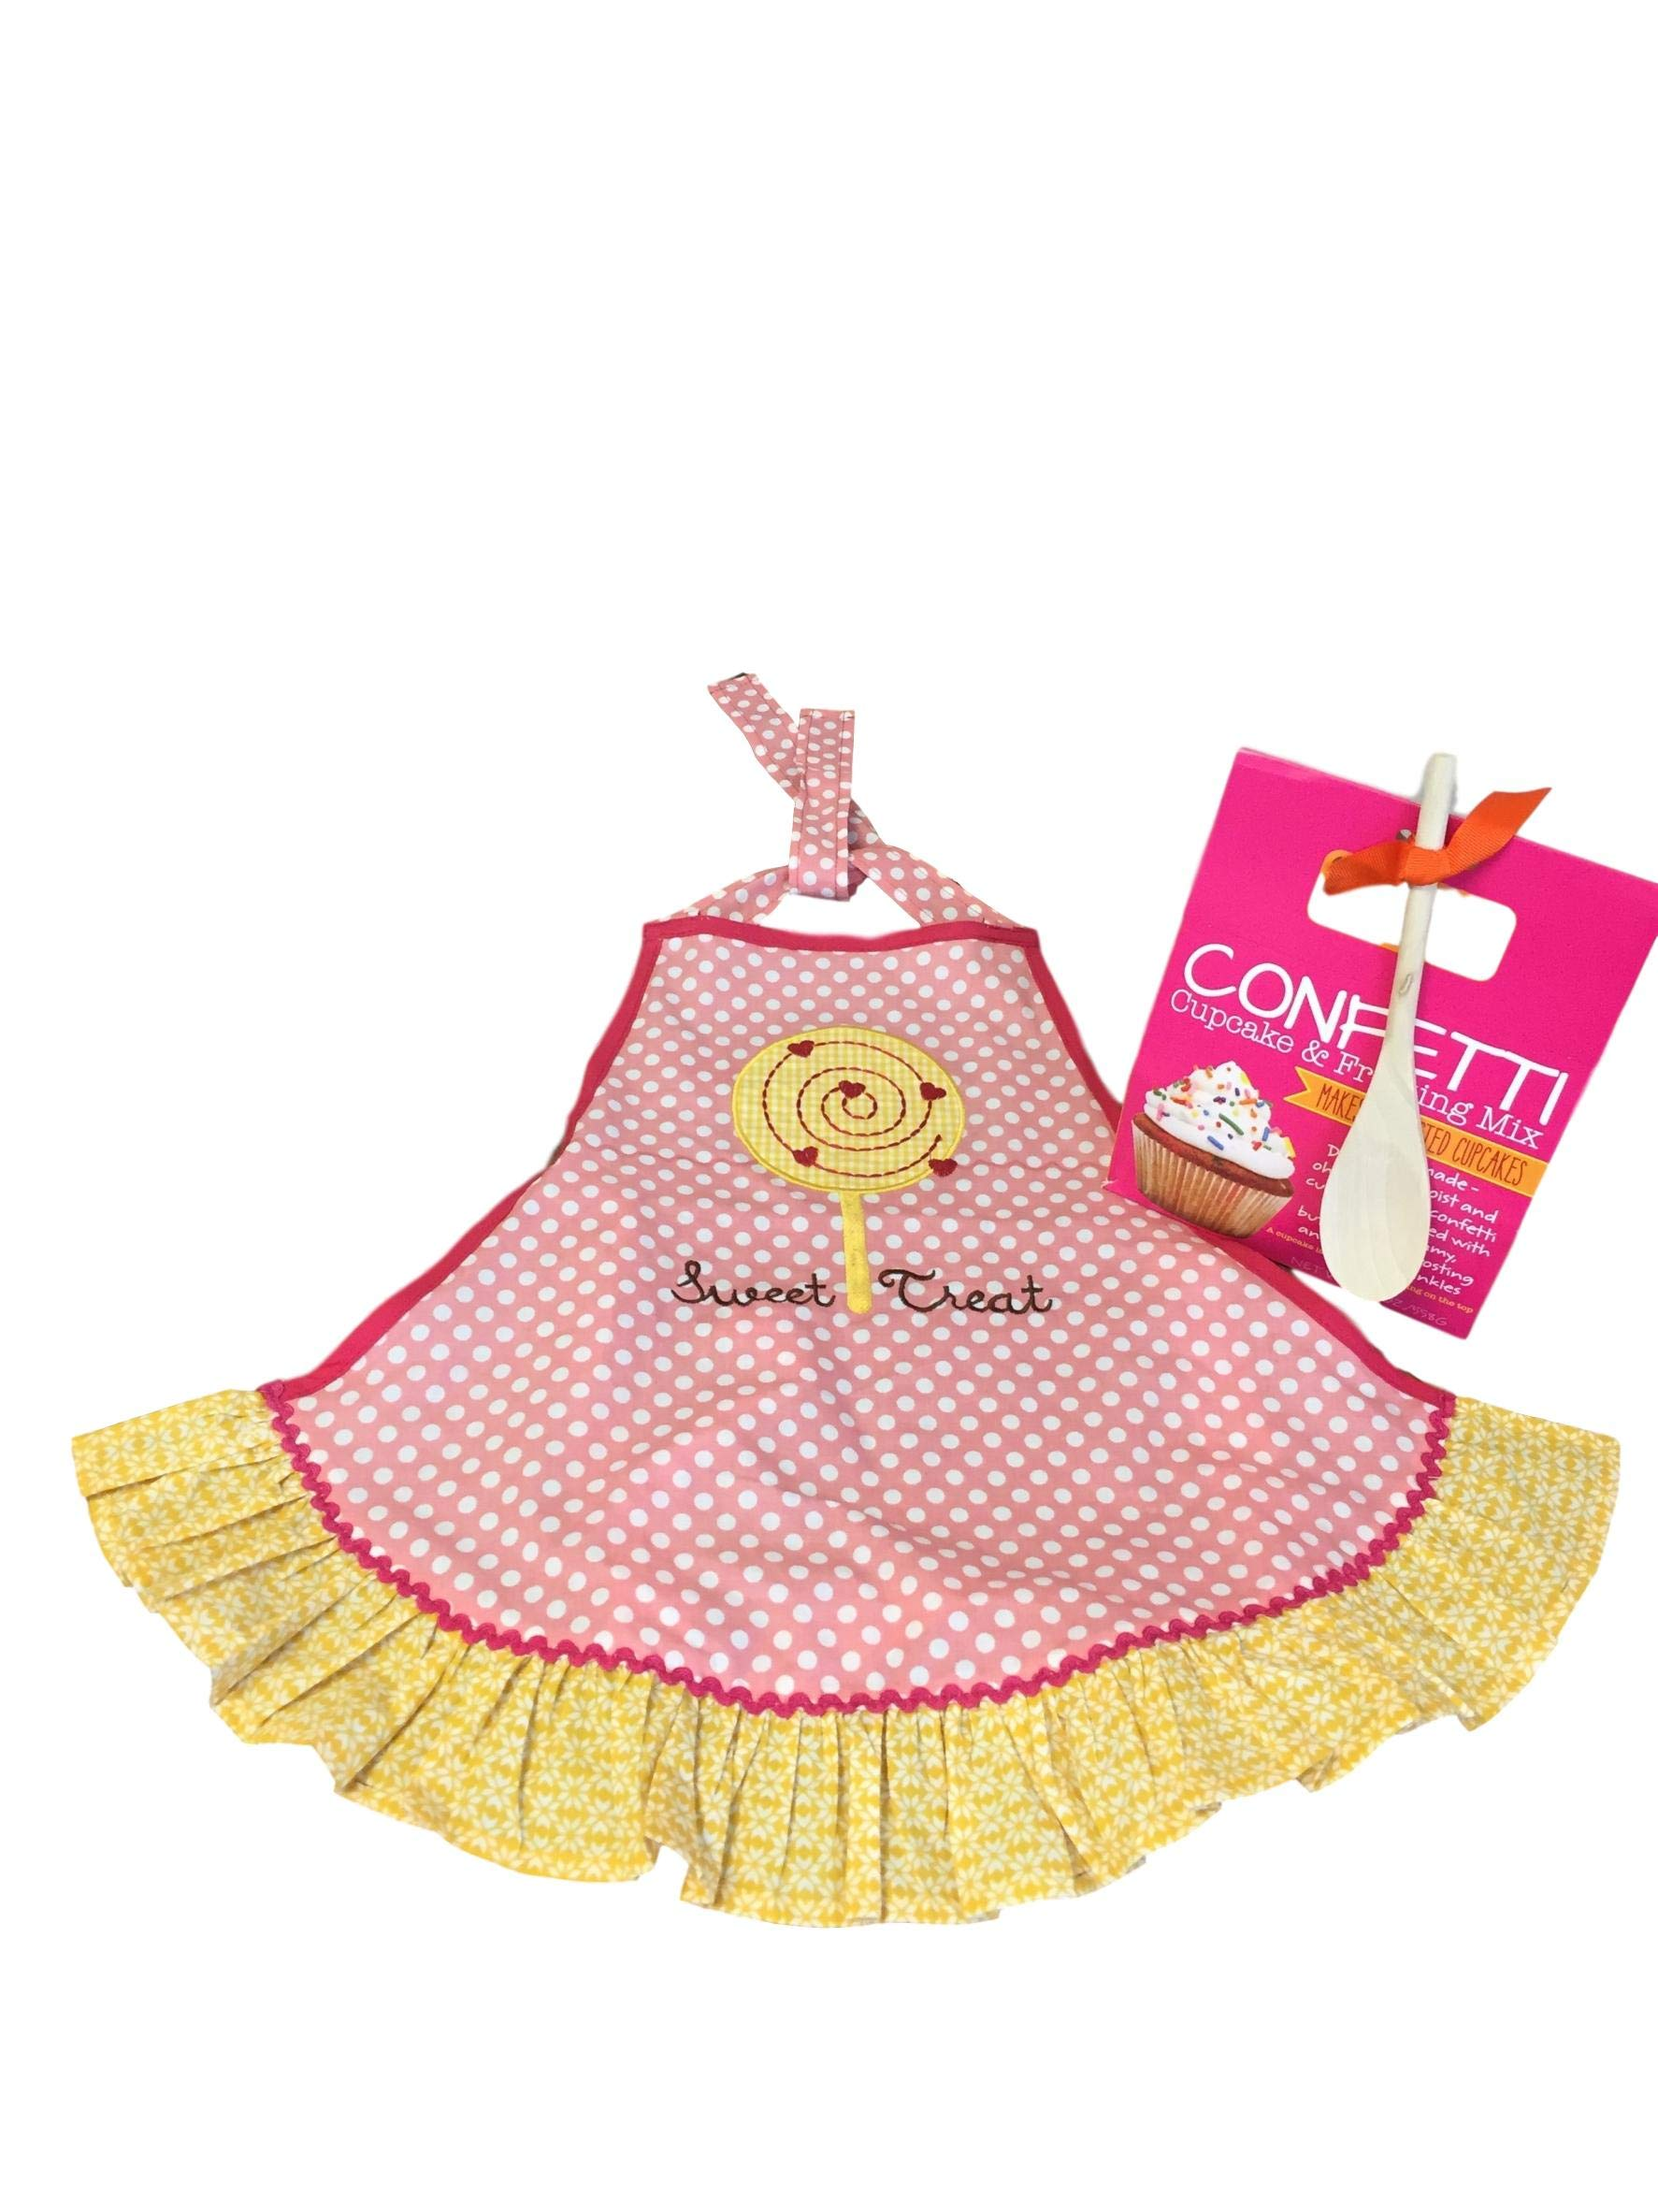 Baking Bundle with Girl's 'Sweet Treat' Apron and Confetti Cupcake & Frosting Kit by IOM (Image #1)